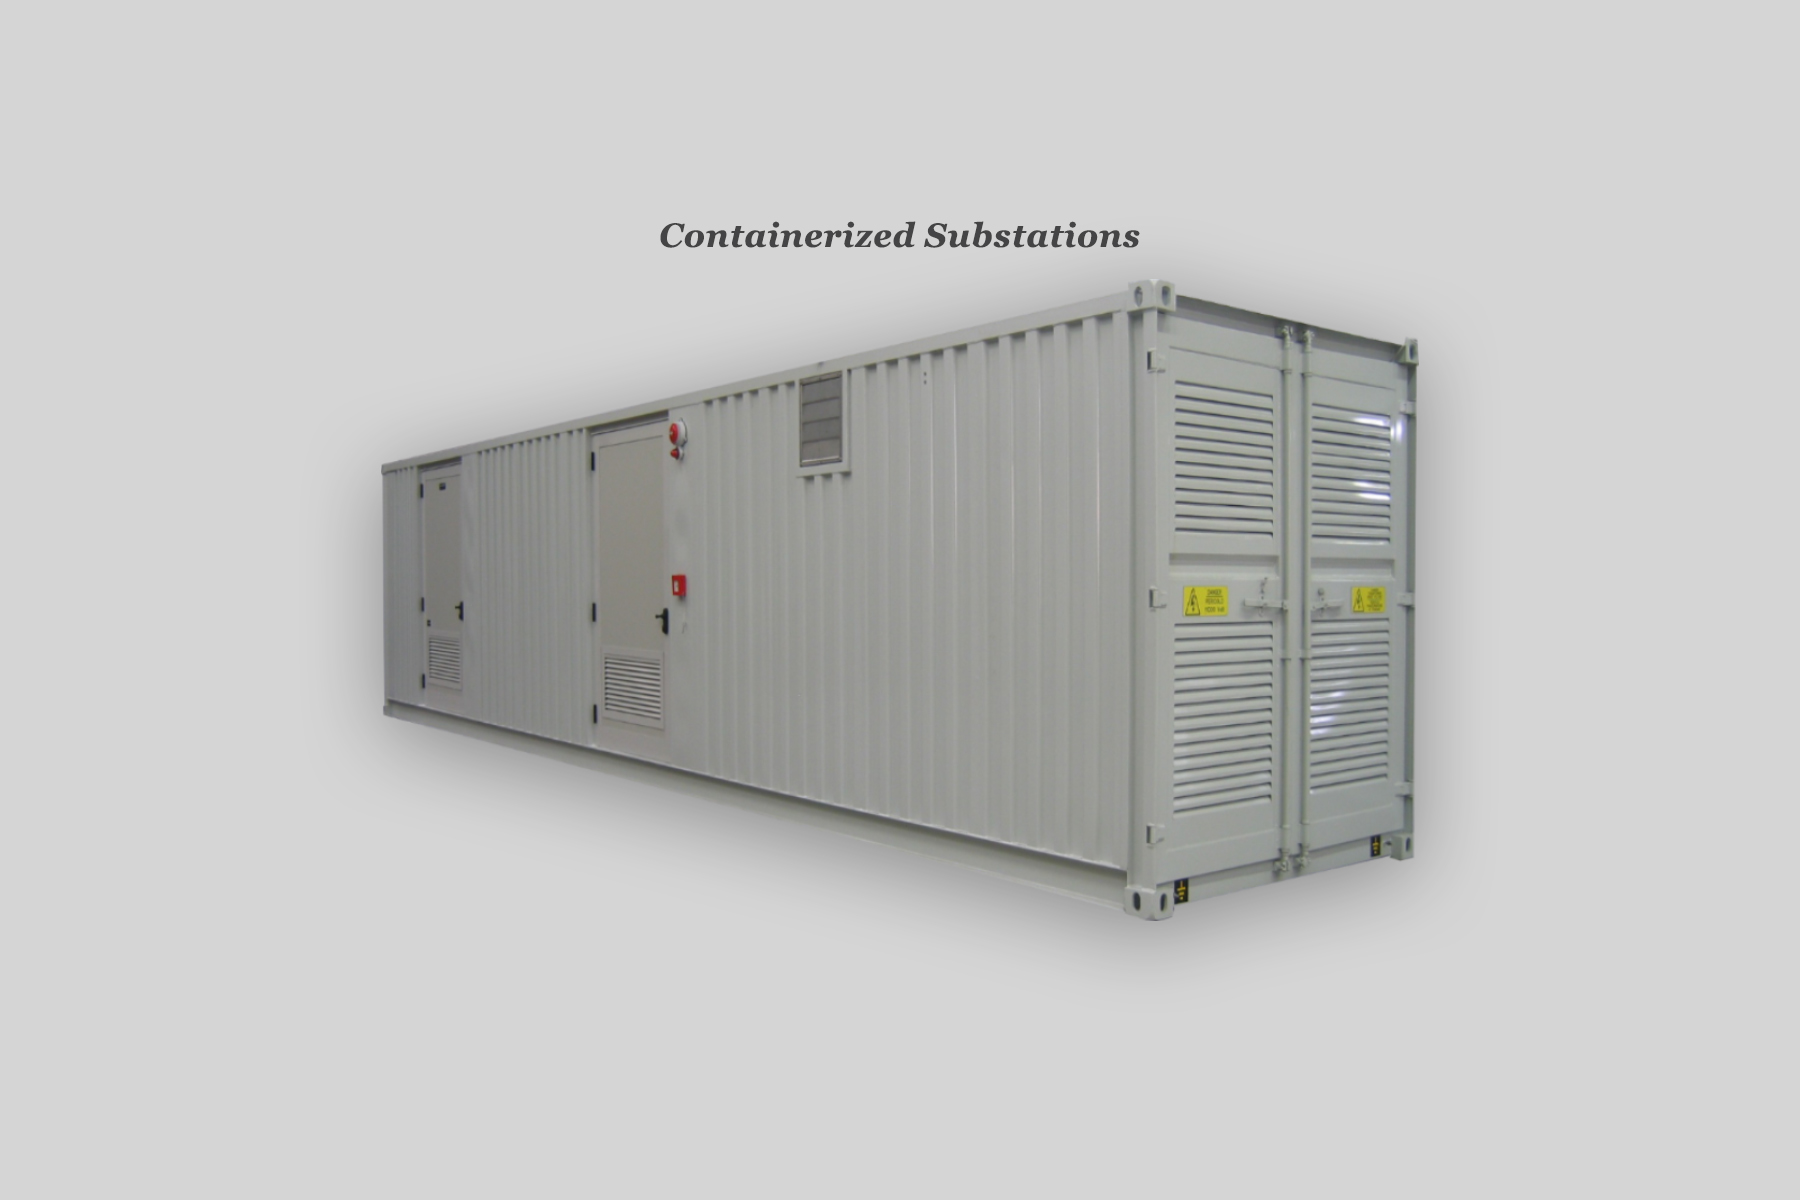 Containerized Substations 3